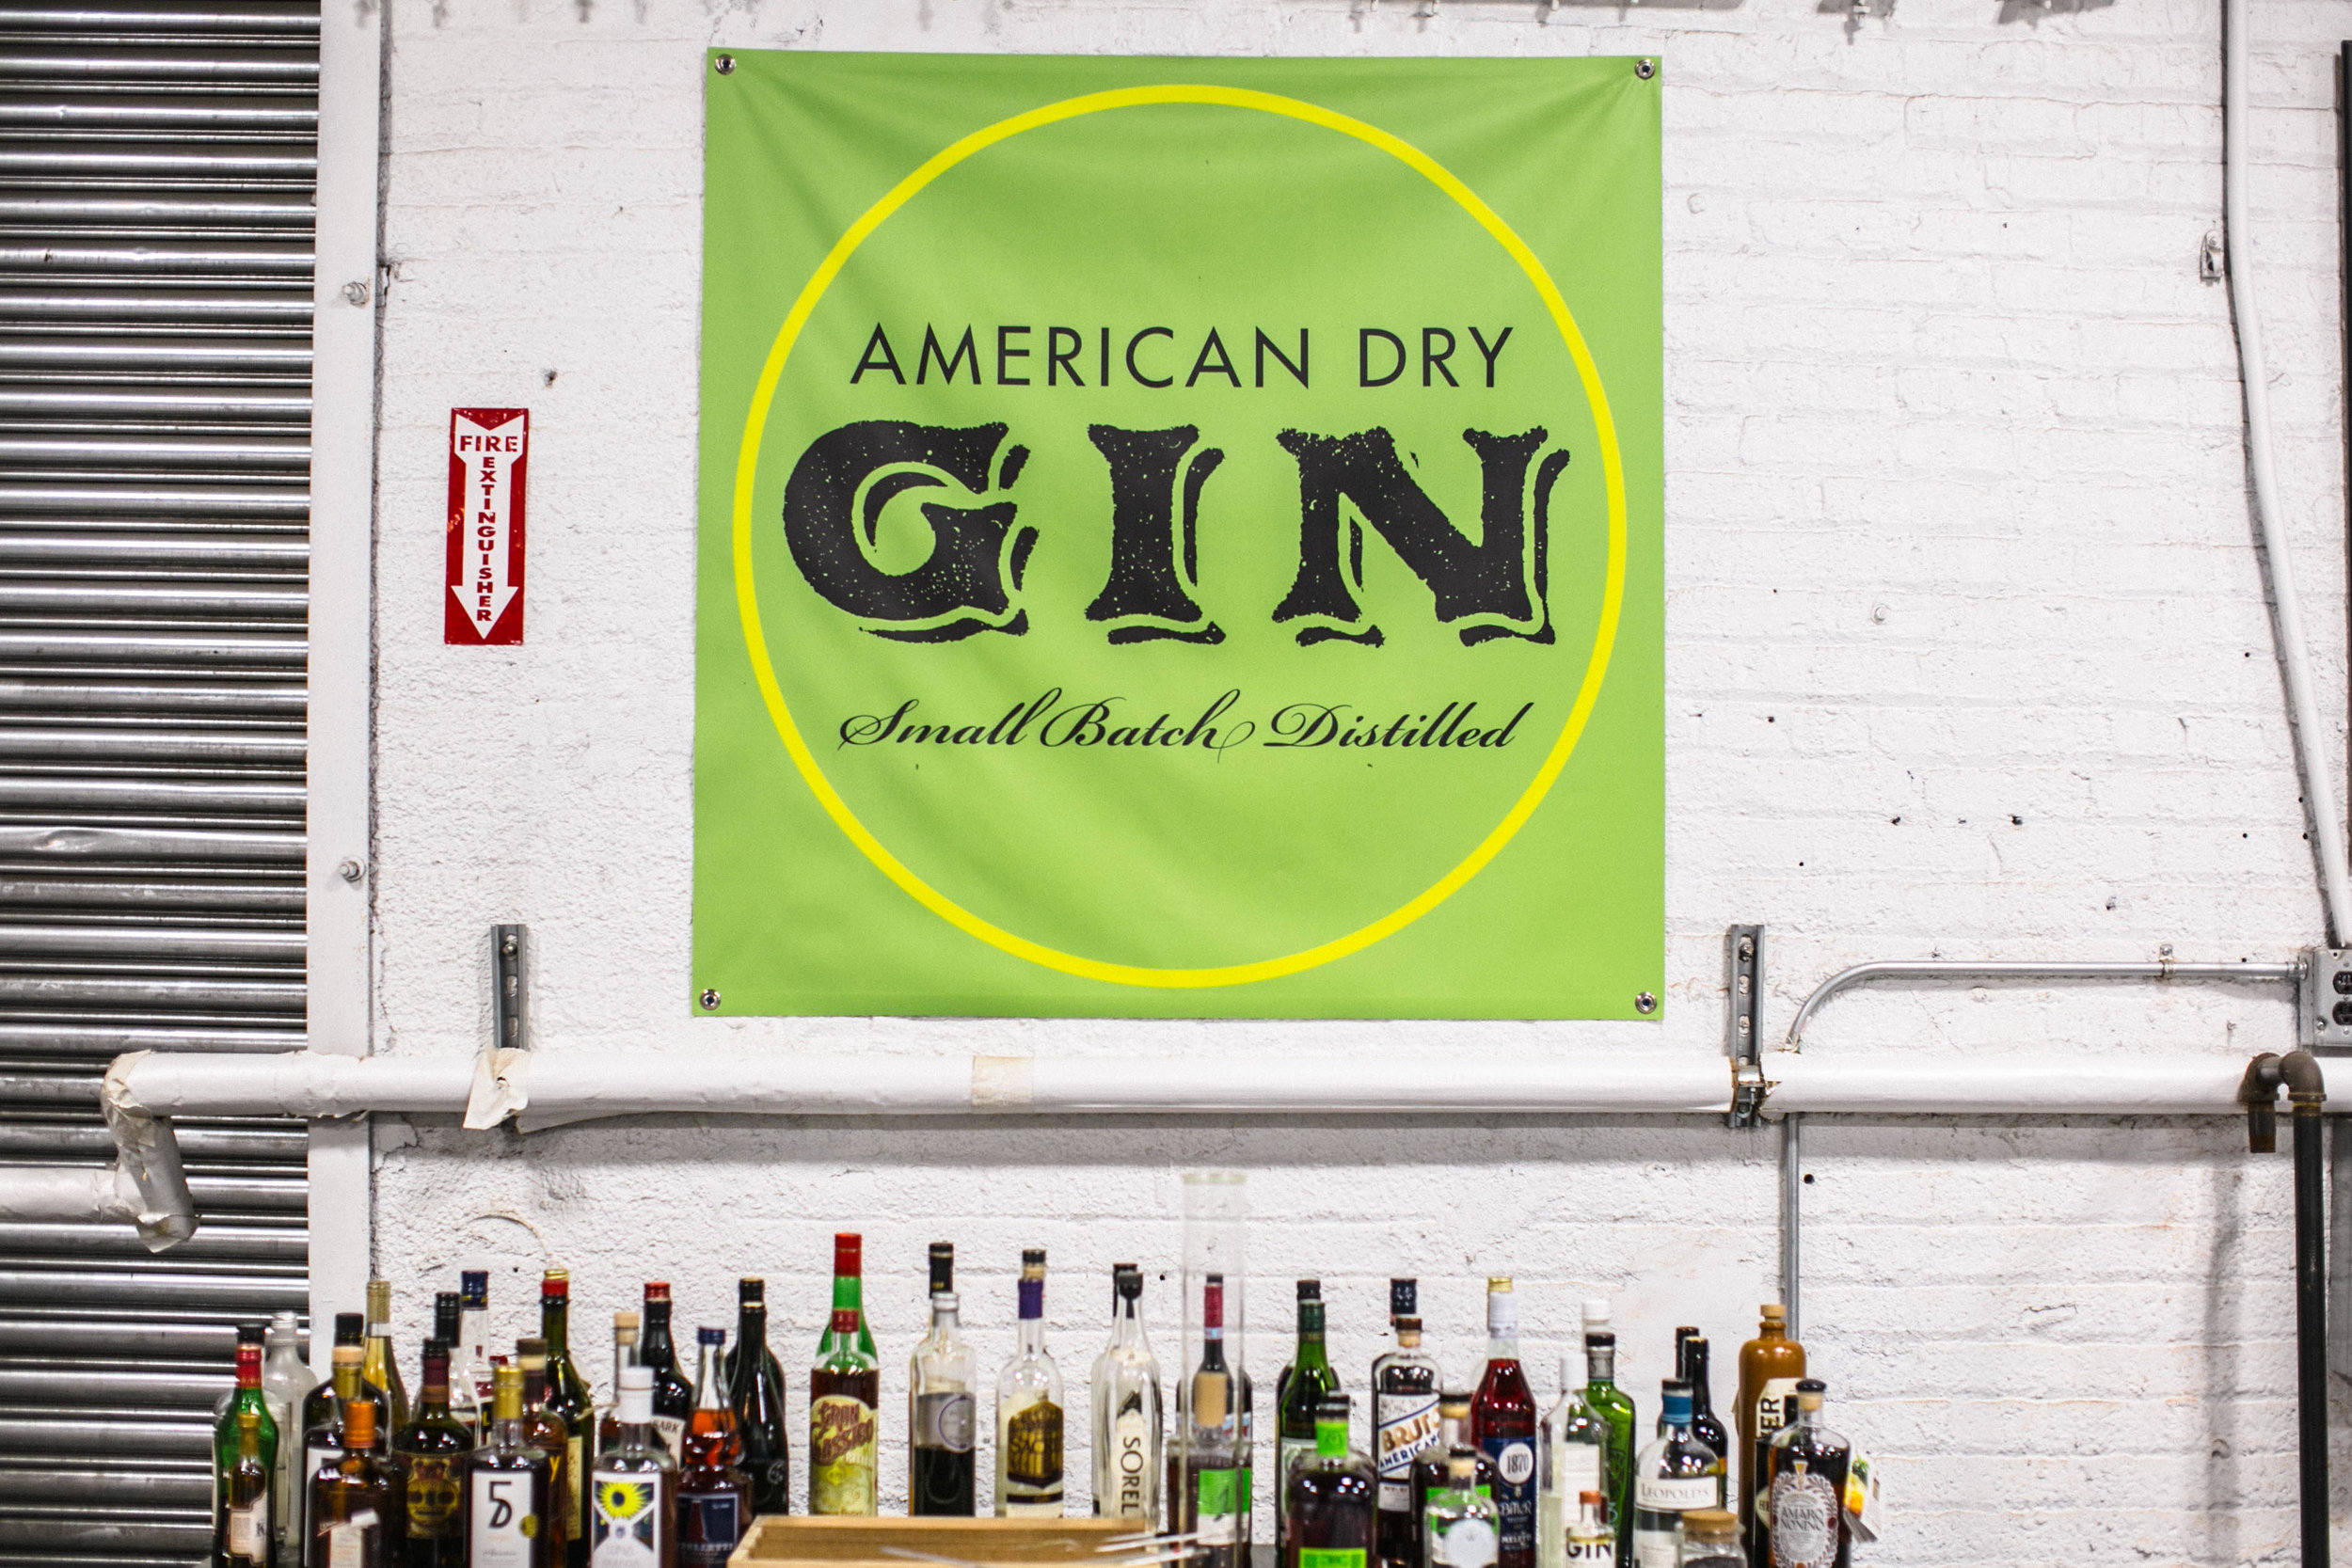 Signature bottles stand beneath the Greenhook Gin flag in the modest Greenpoint distillery.